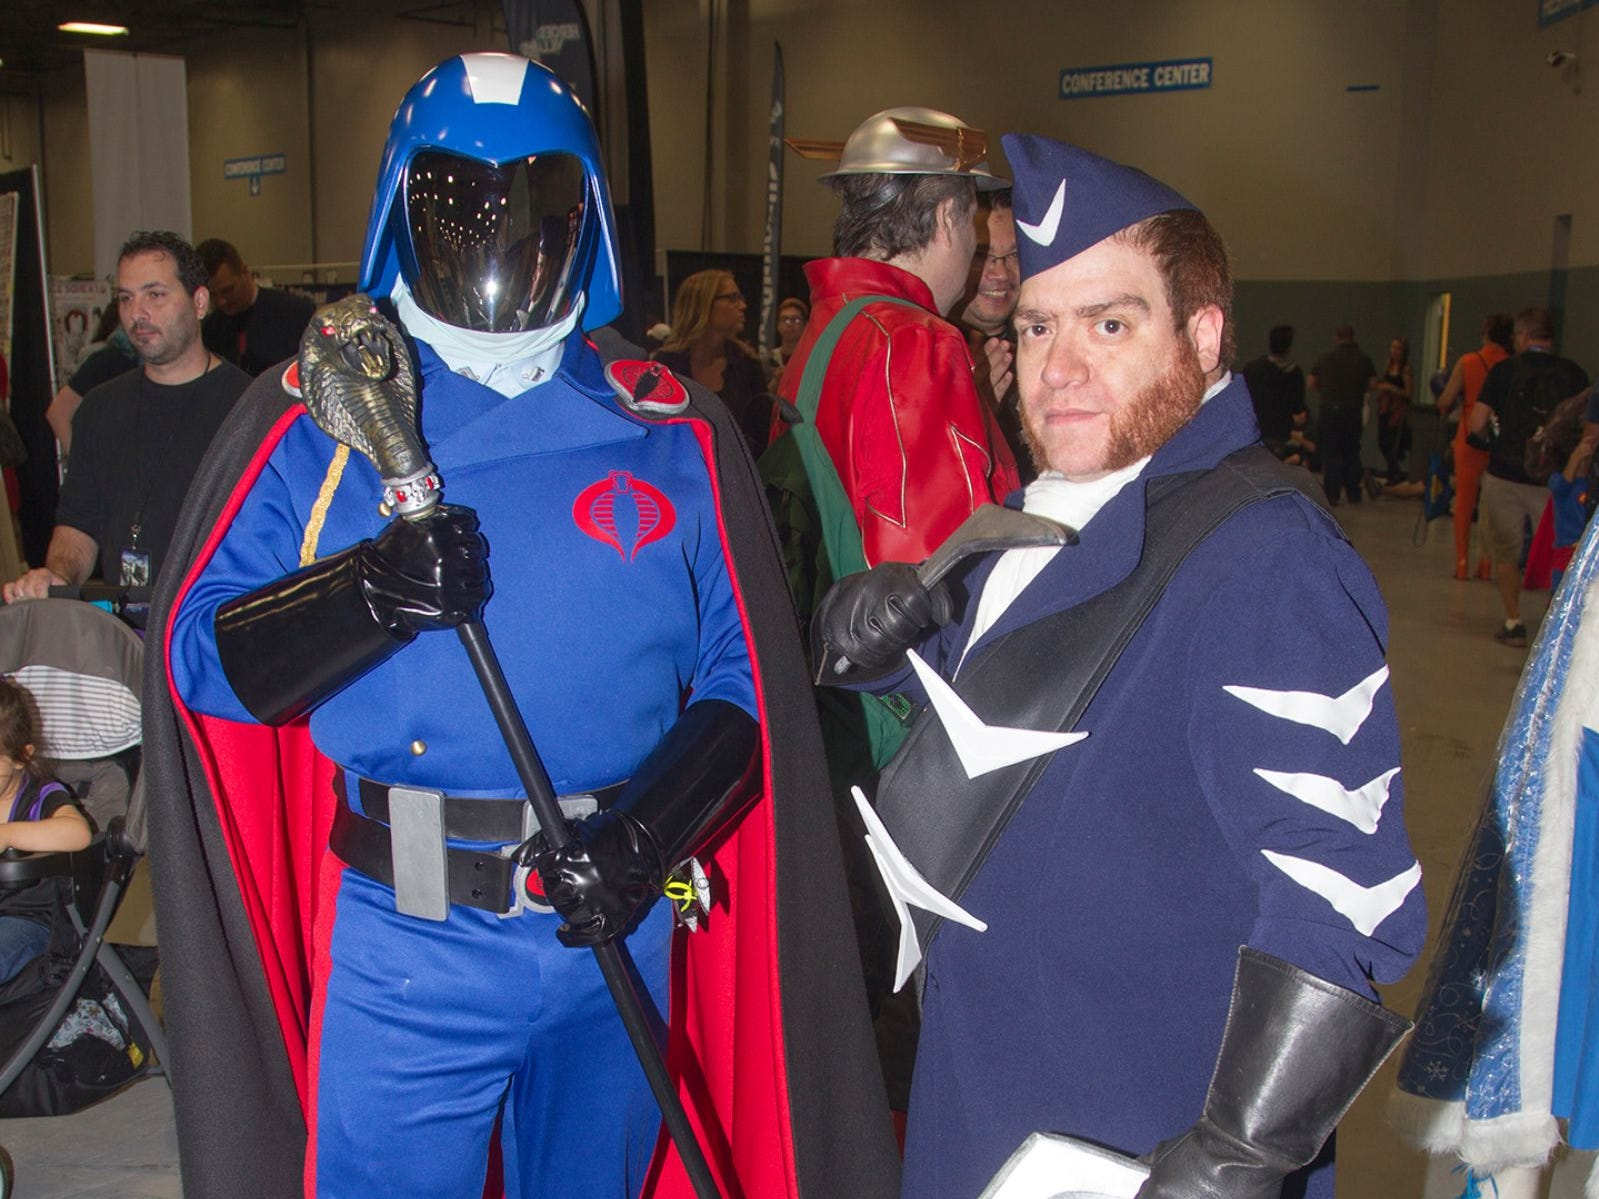 Cobra Commander and Captain Boomerang. The 2018 Heroes and Villains Fan Fest took place at the New Jersey Convention & Expo Center. 09/09/2018